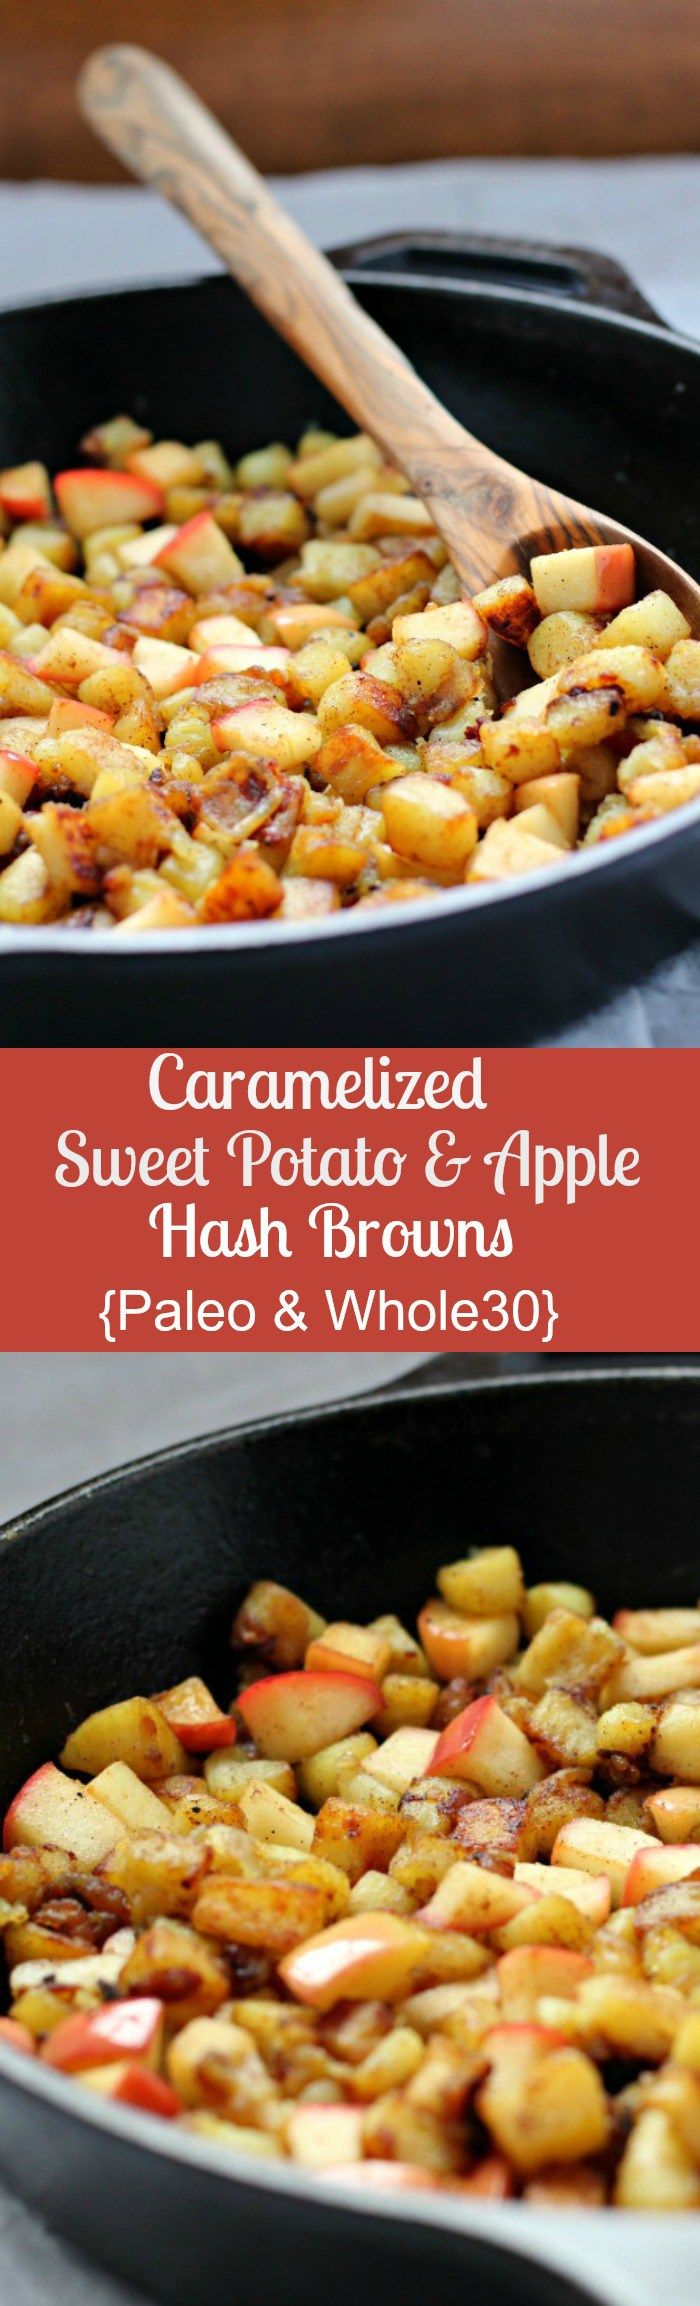 Caramelized sweet potato and apple hash browns - paleo and whole30 - make with a white or orange sweet potato - so simple and incredibly delicious!